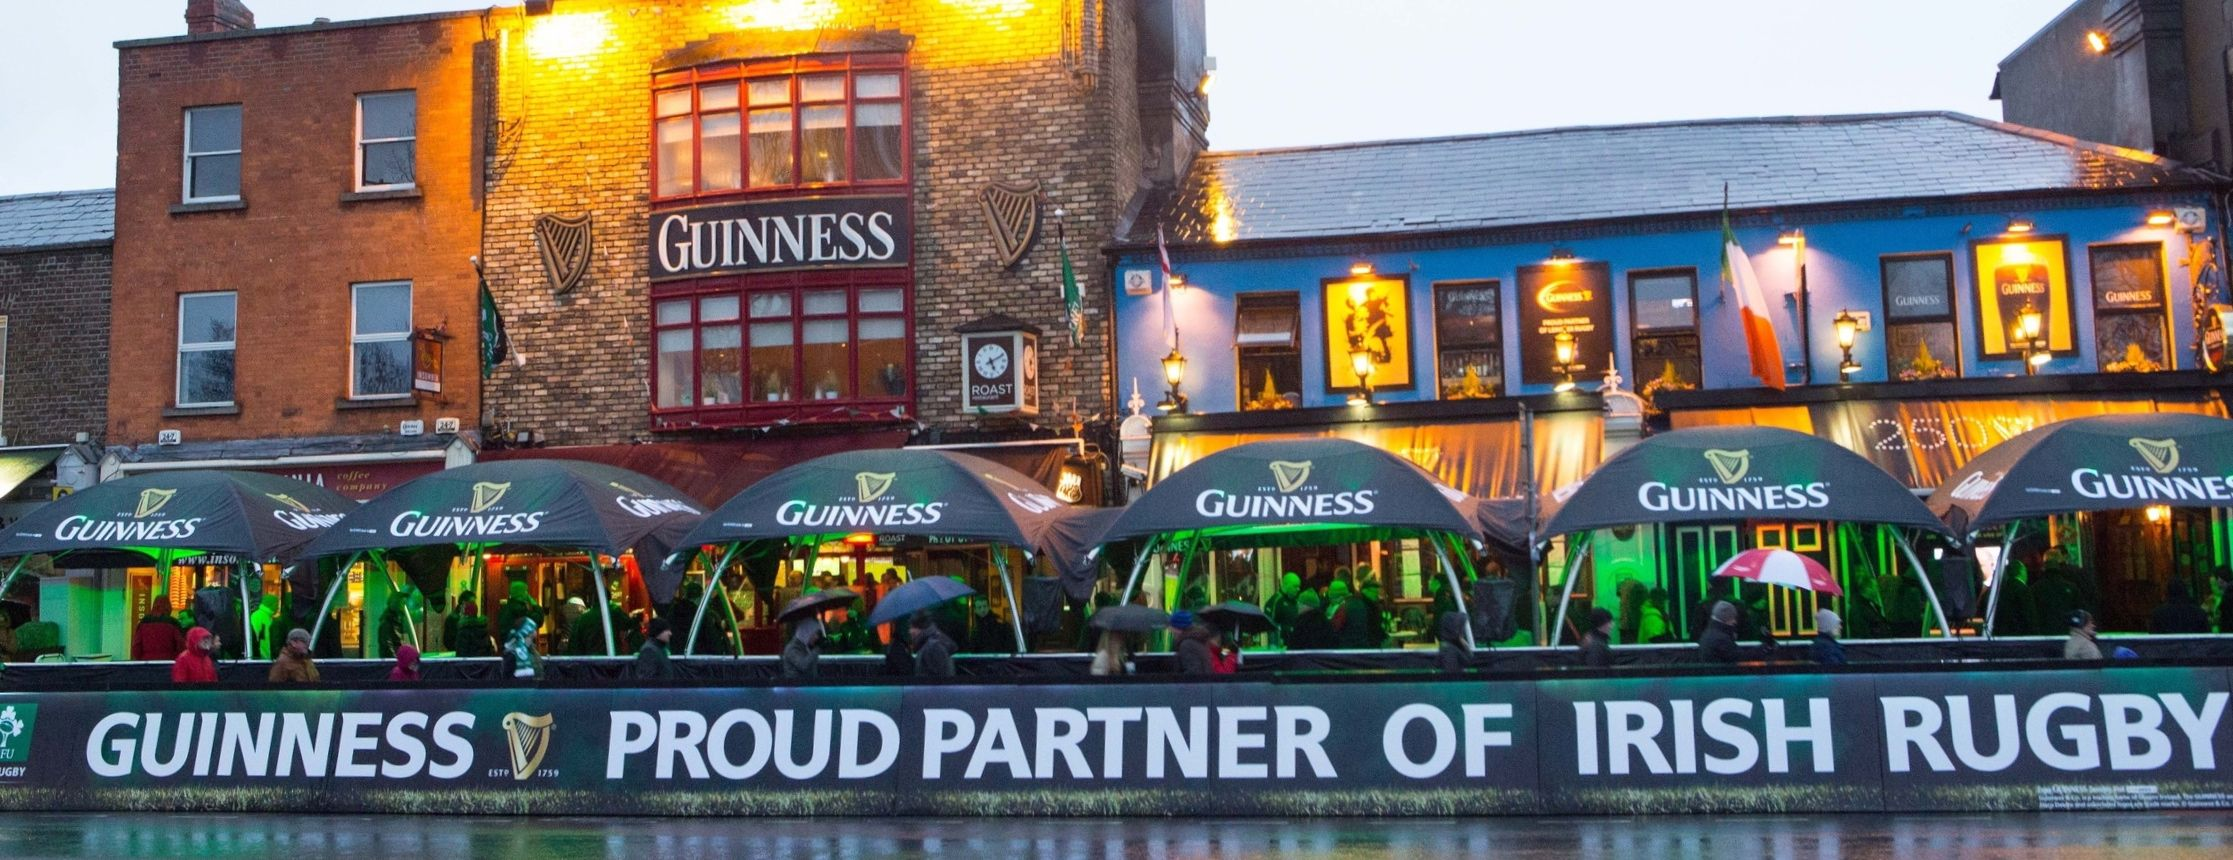 Creative Structures Lounger Medium  Brand Activation Guinness